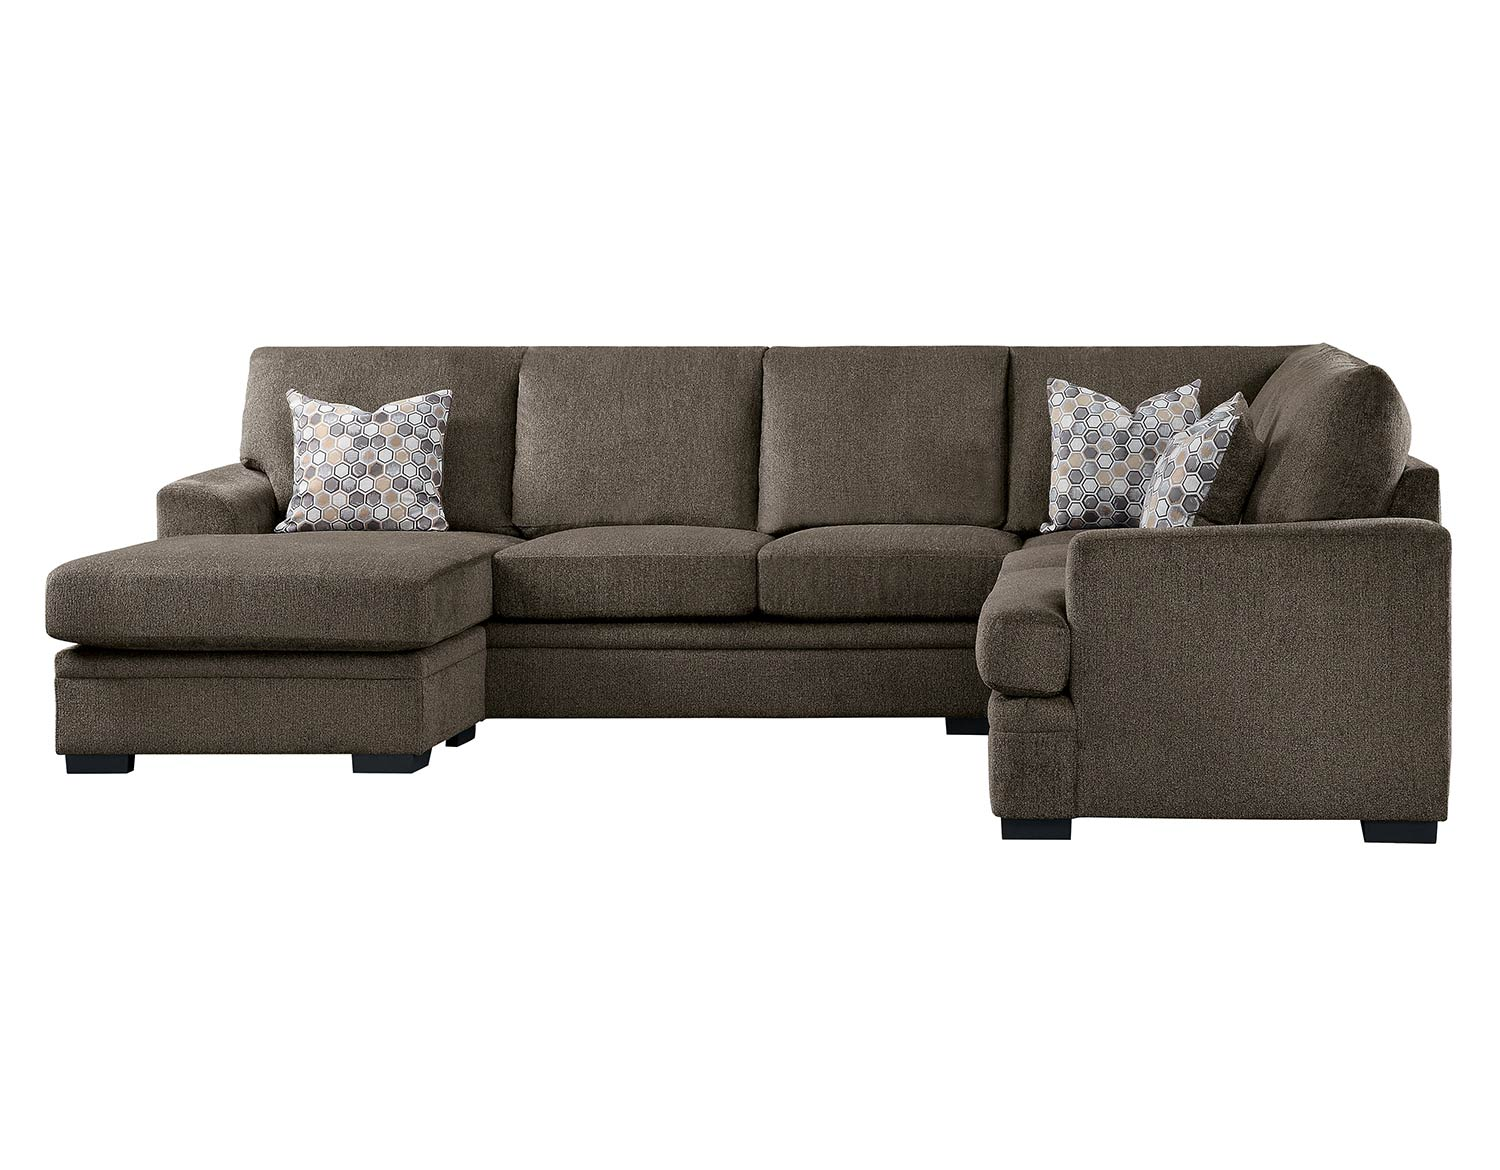 Homelegance Maddy Sectional Sofa Set - Brown